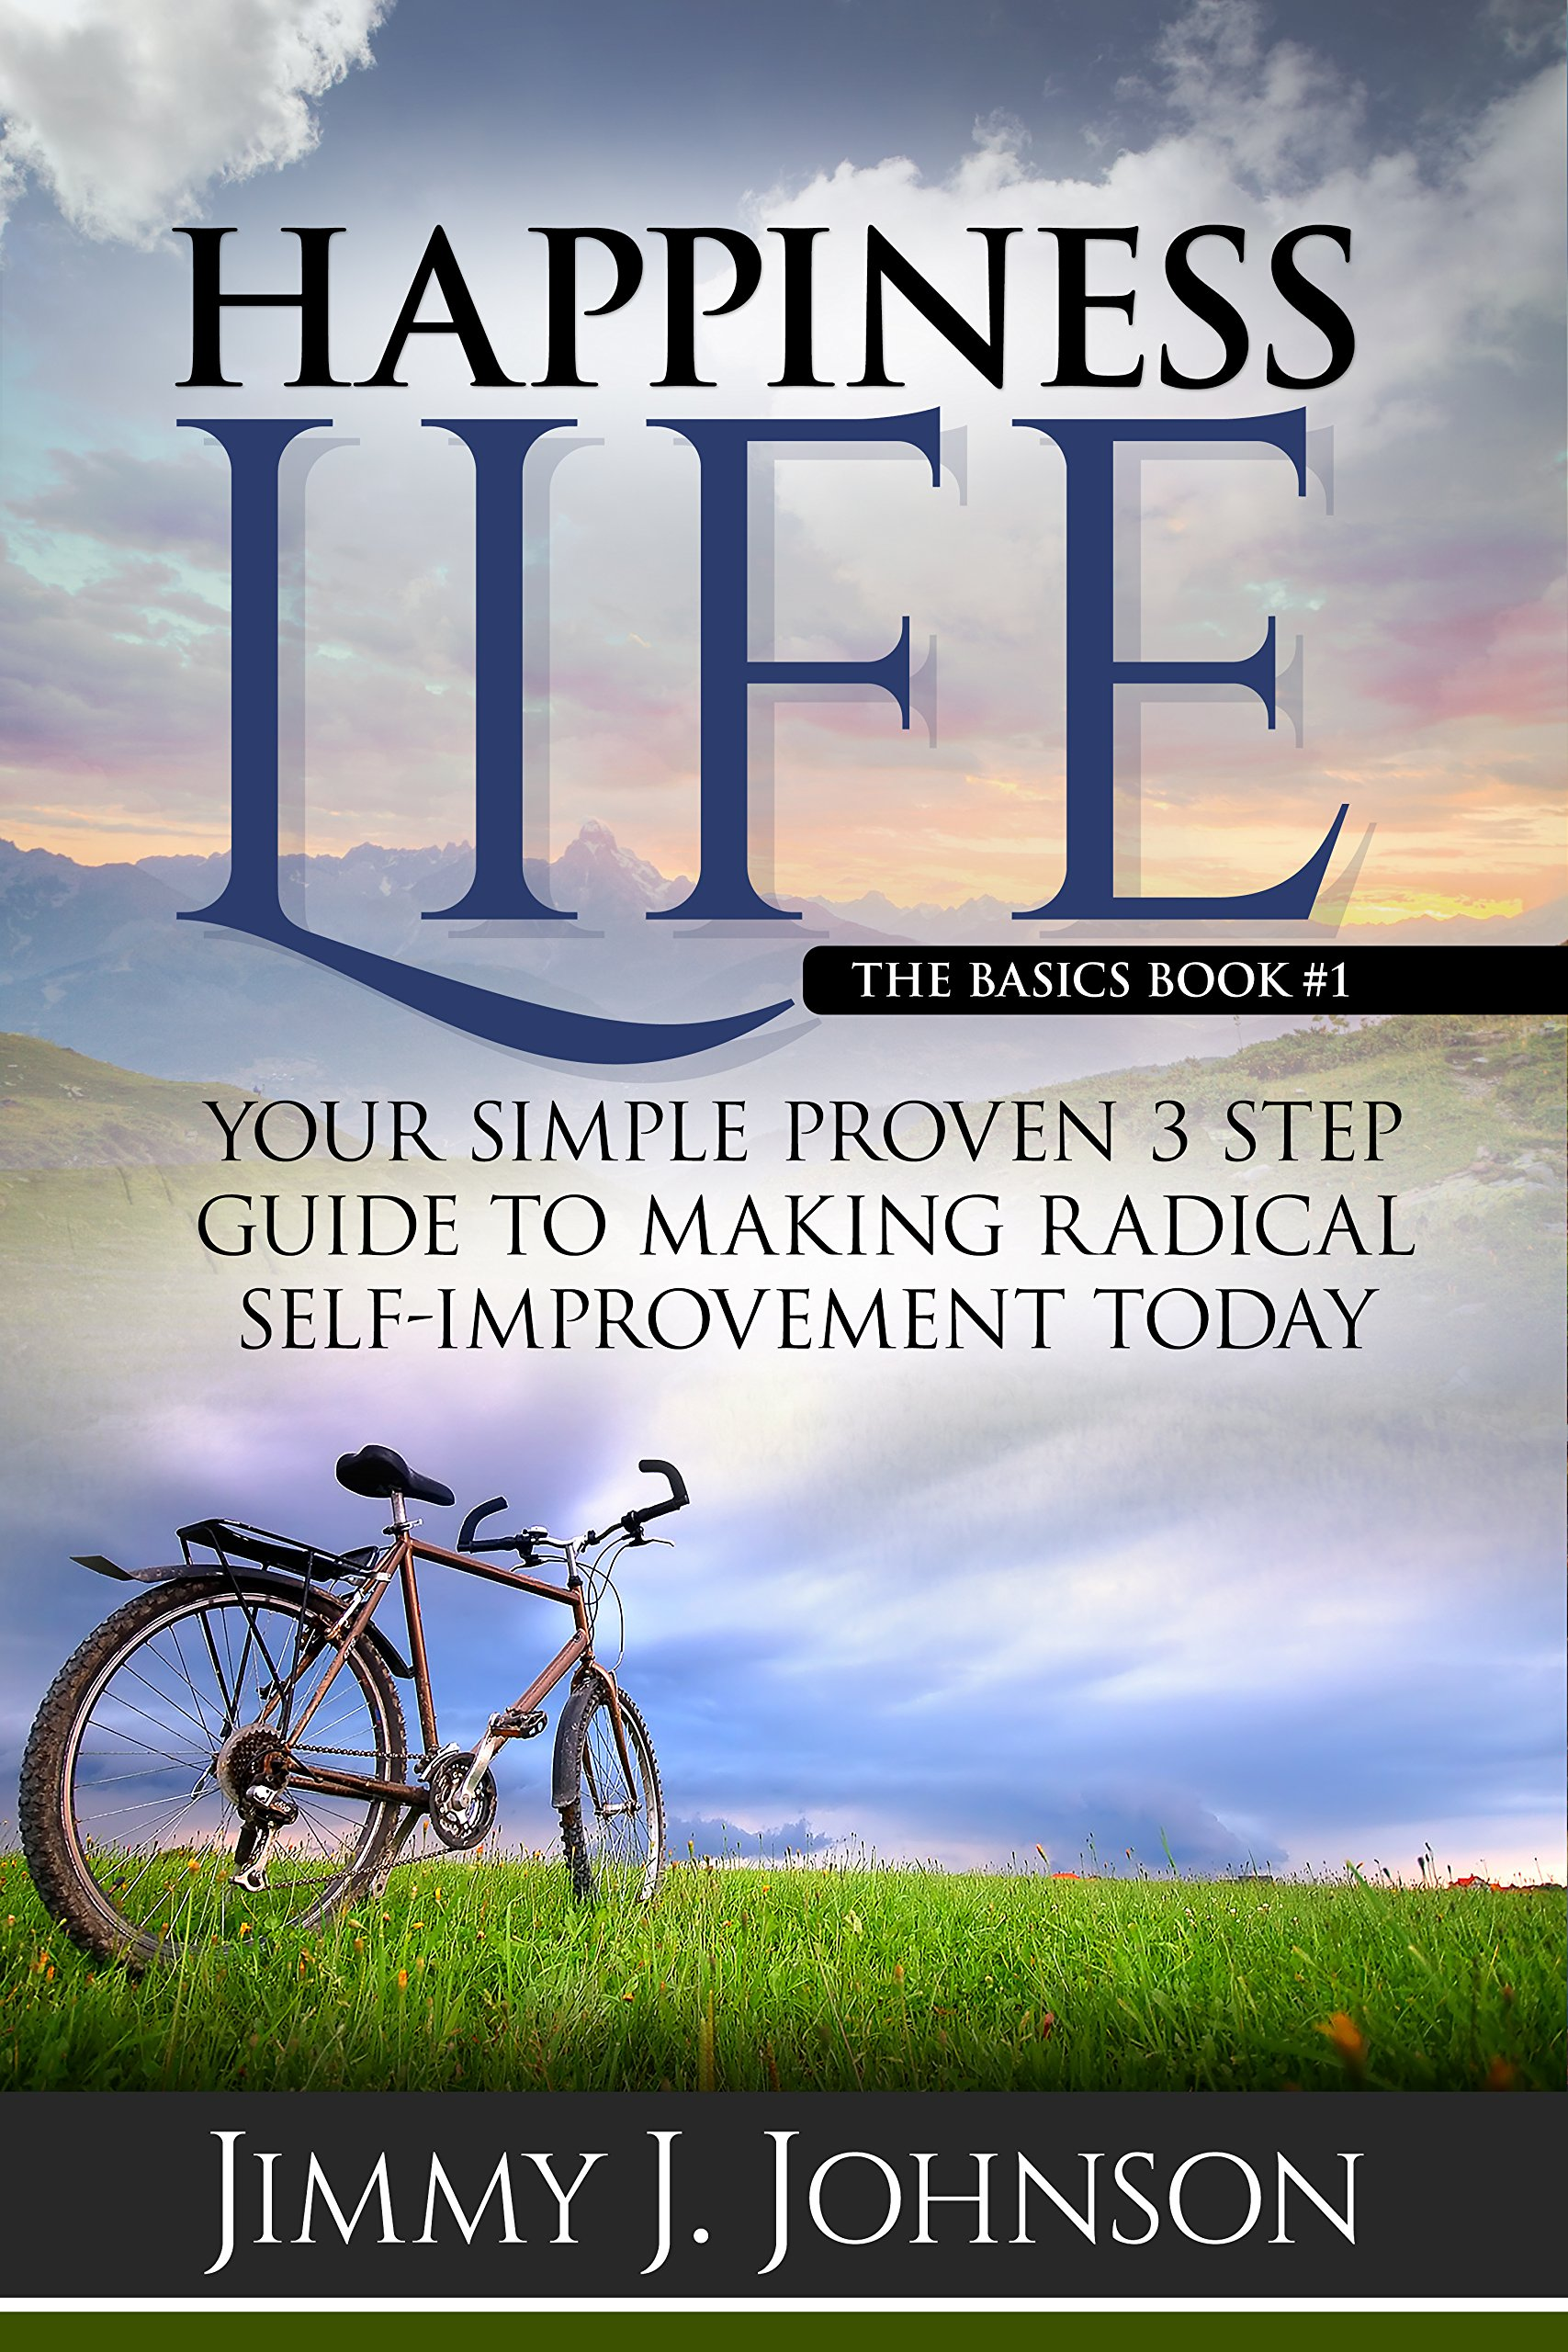 Happiness LifeThe basics: Your Simple Proven 3 Step Guide to Making Radical Self-Improvement Today book (Happiness Personal Transformation and Spiritual Growth Series 1) (English Edition)